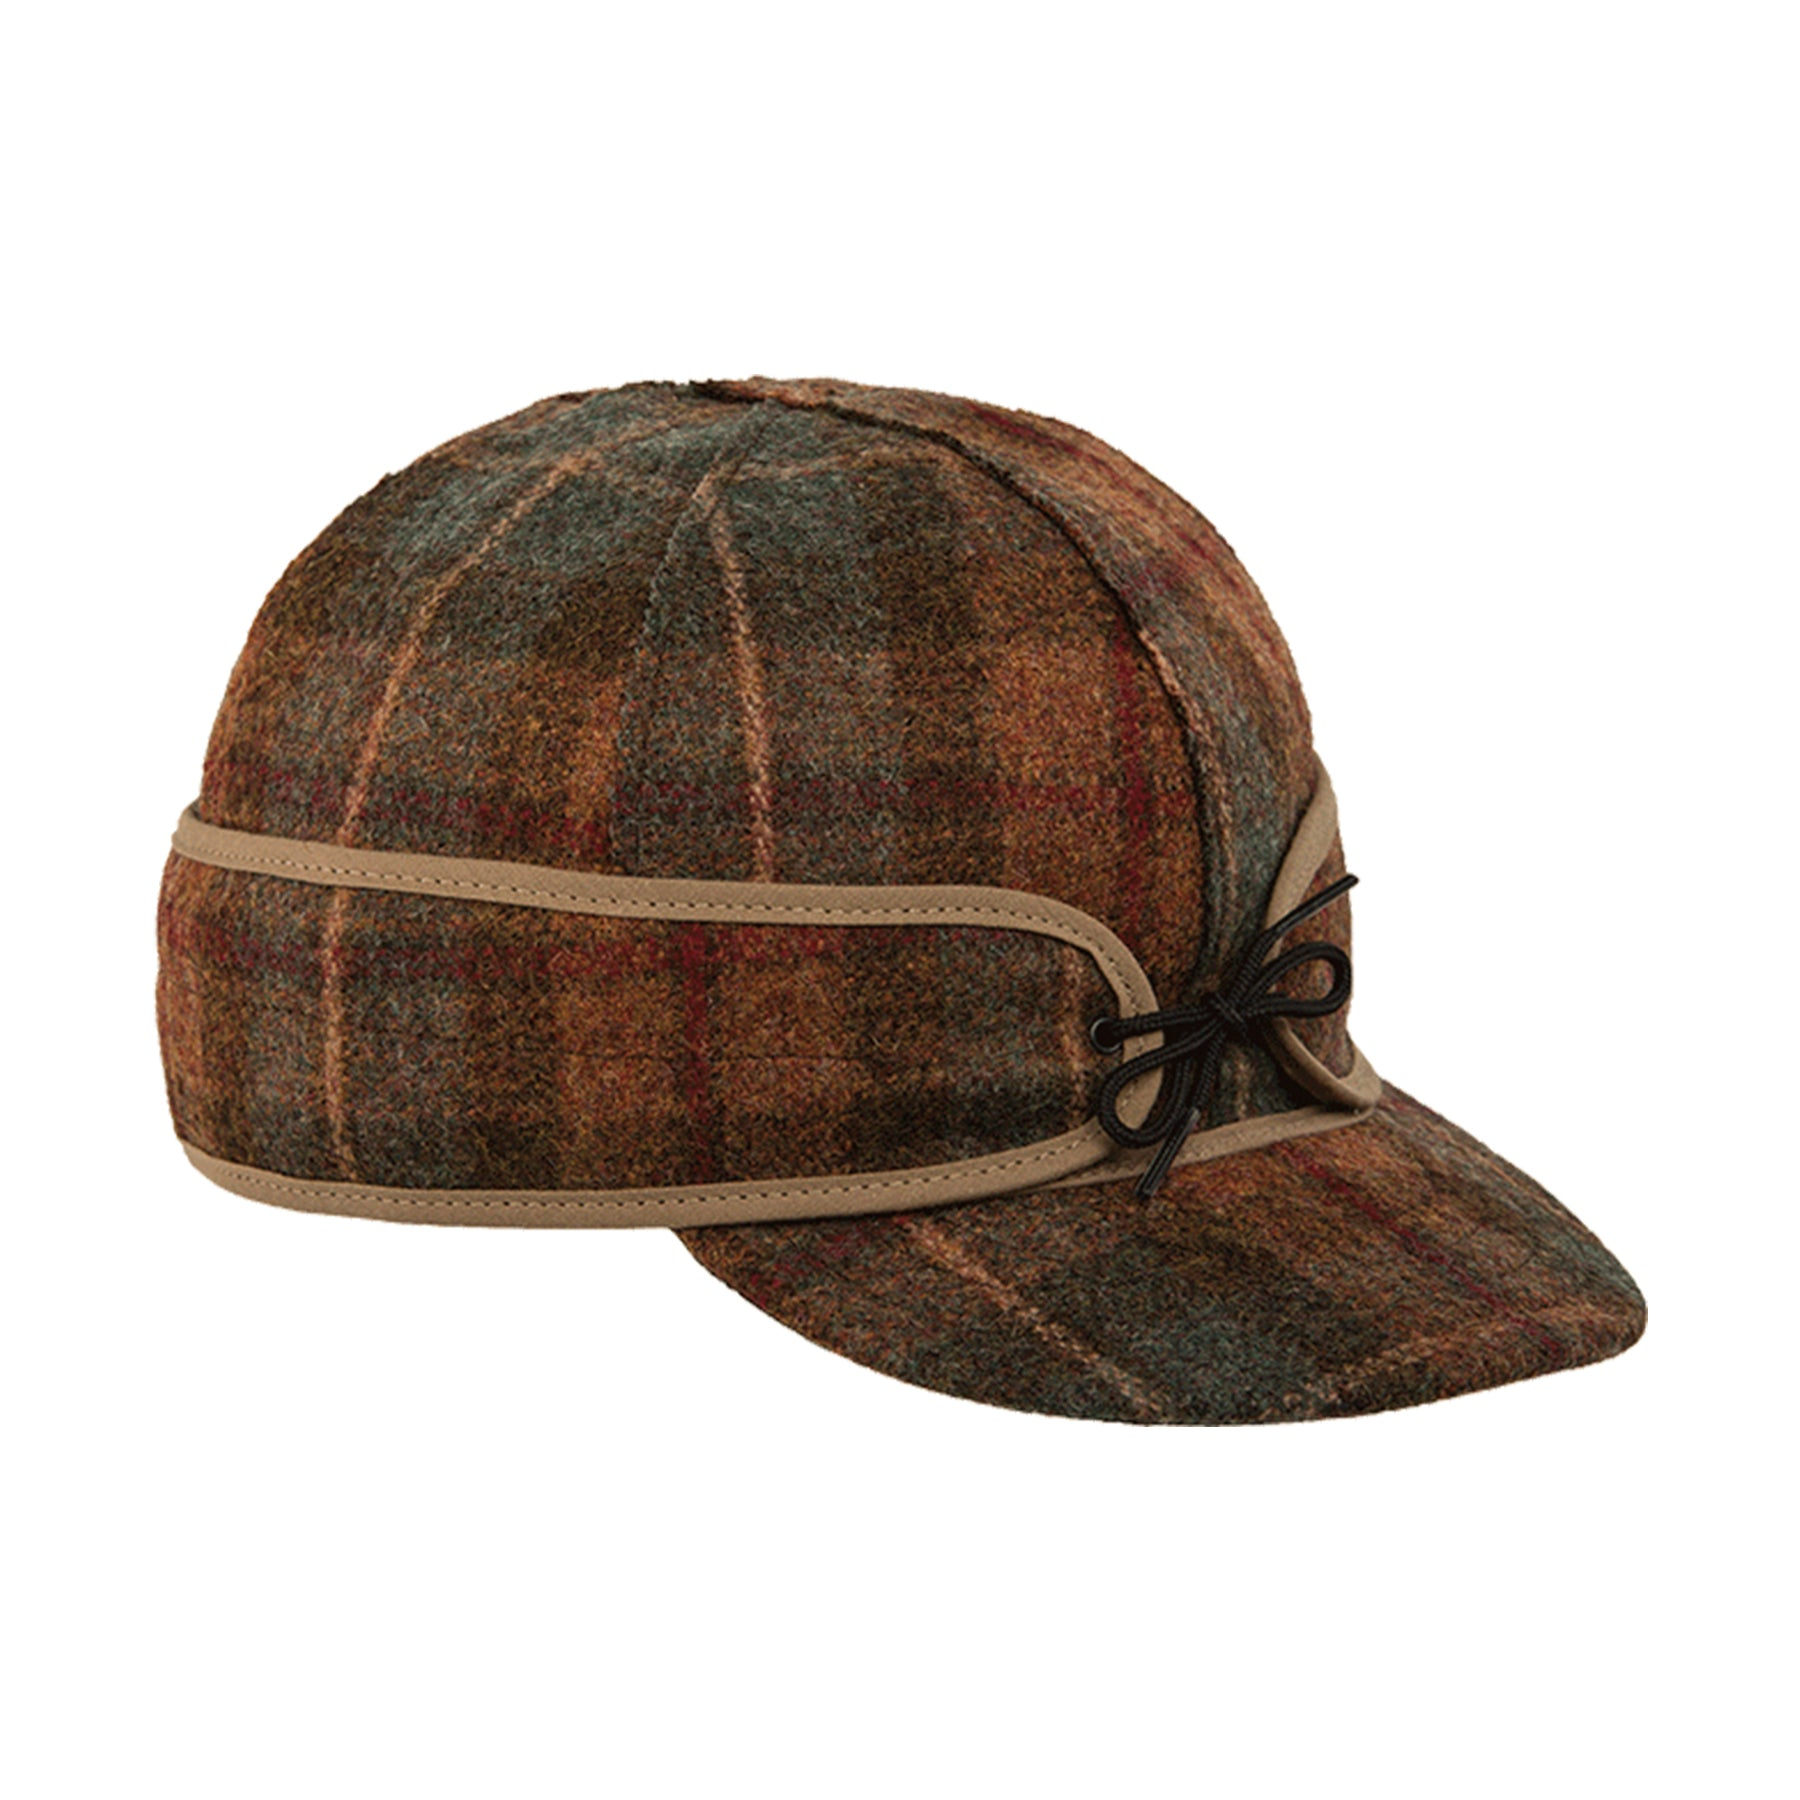 Original Stormy Kromer Wool Cap - Partridge Plaid